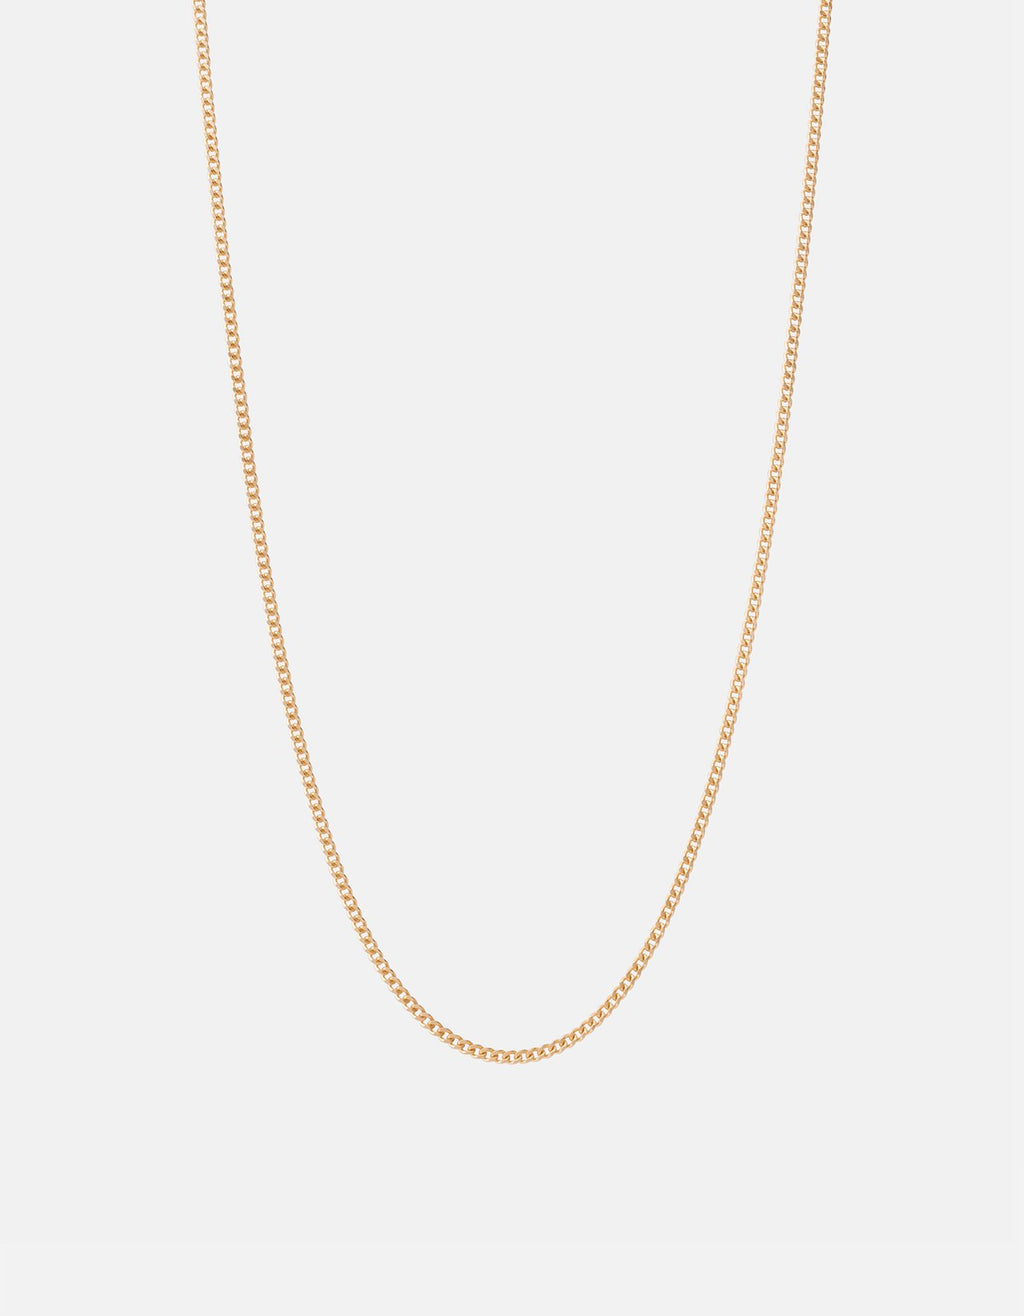 Miansai-2mm-Chain-Necklace-14k-Yellow-Gold-Polished-24in.